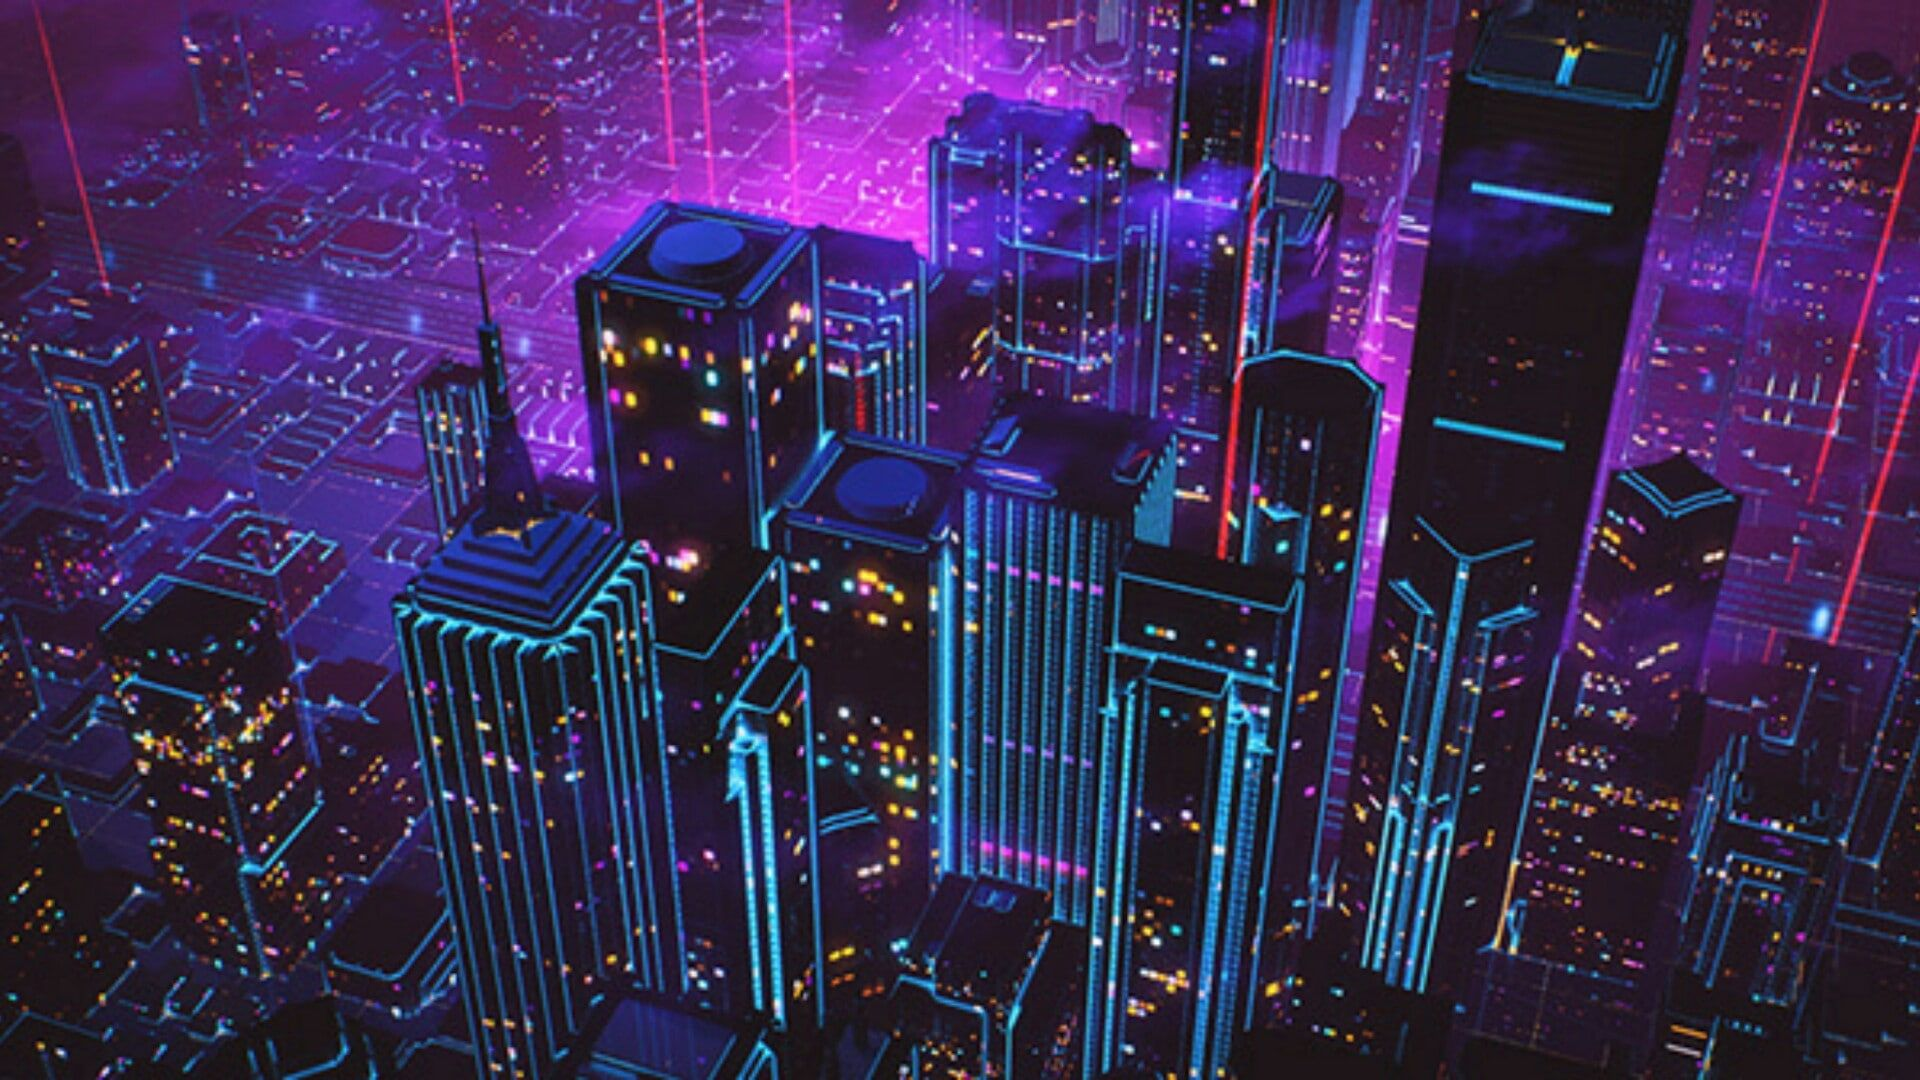 special effects city lights #artwork #electricity #city #art psychedelic art #night #retrowave #aesthetic visual effects #neon #metropolis #style #chill #calm city view #1080P #wallpaper #hdwallpaper #desktop